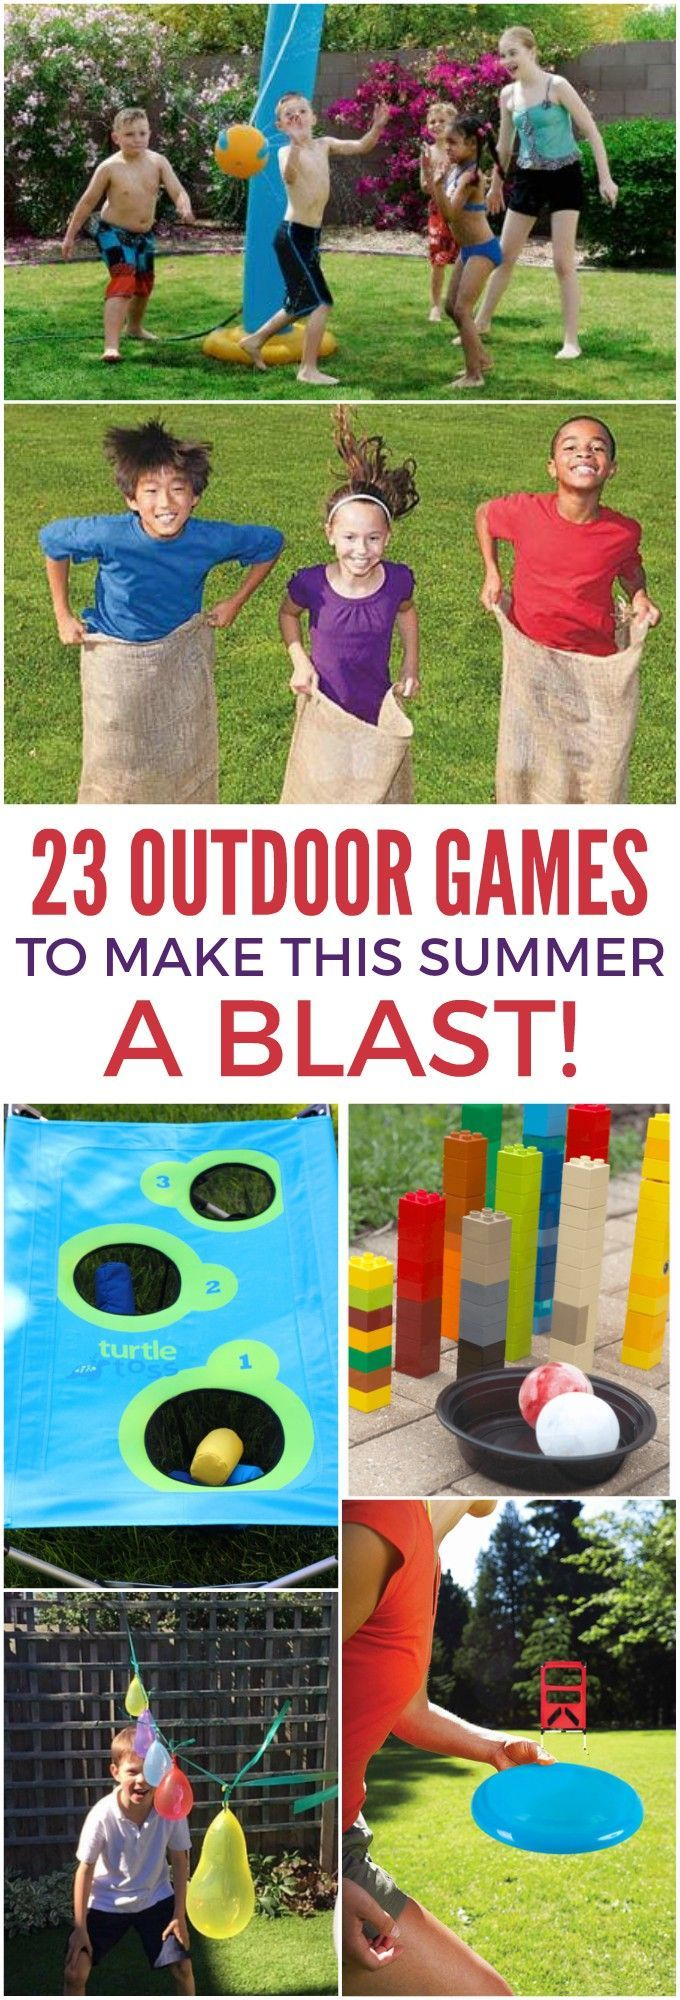 fun games to play outside with 2 players